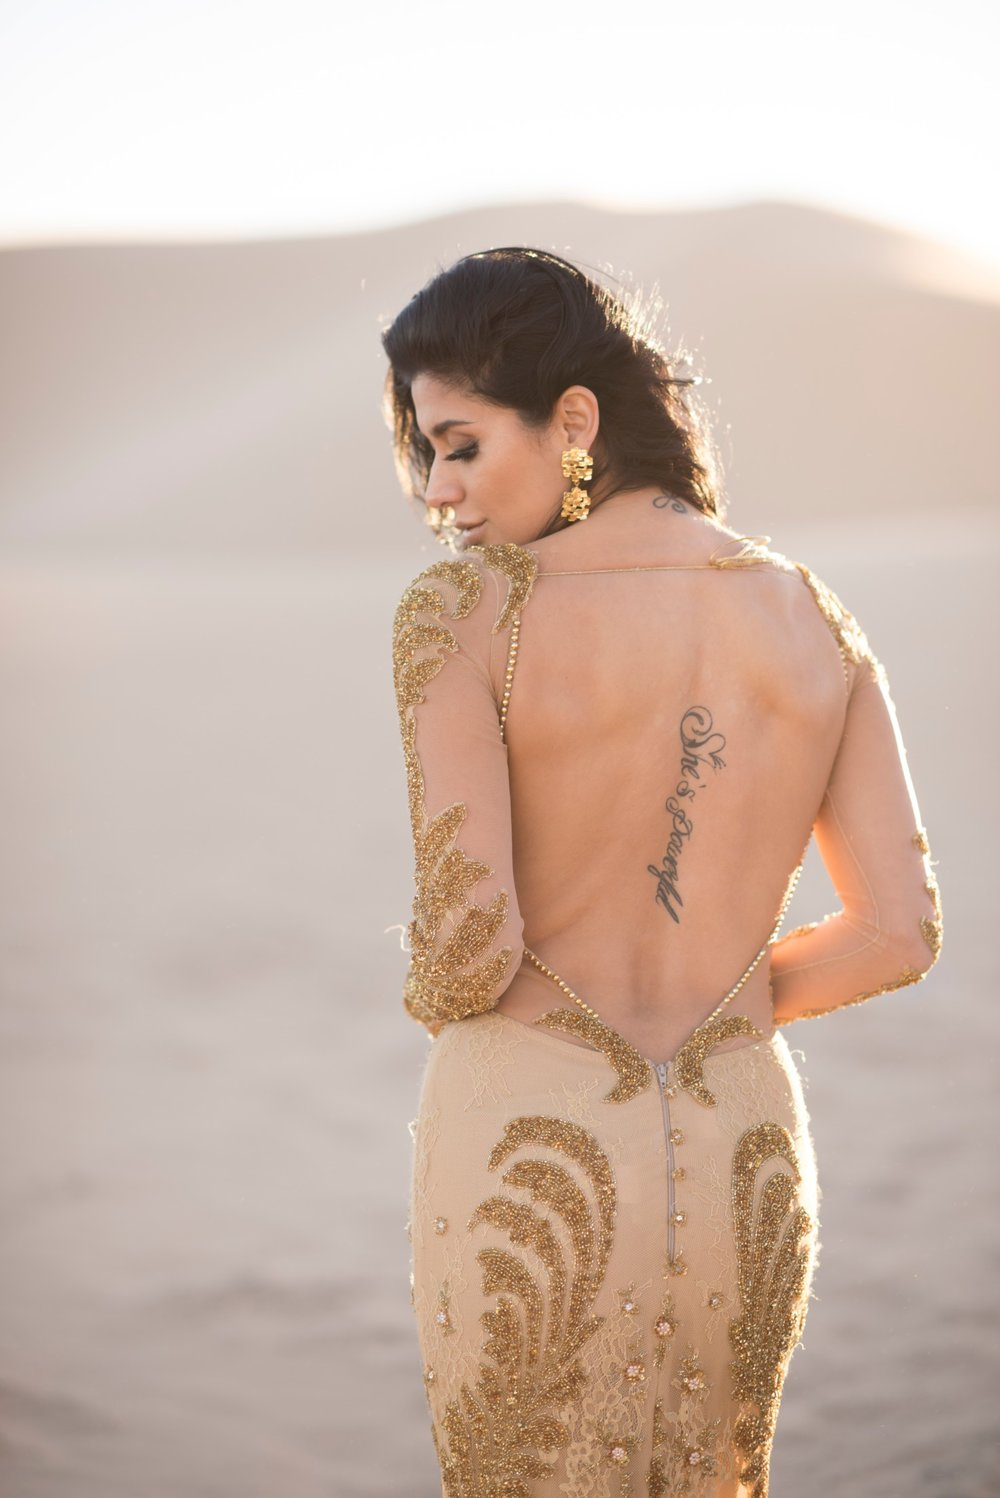 089_KLK_Galia Lahav_Desert Bridal Shoot.jpg